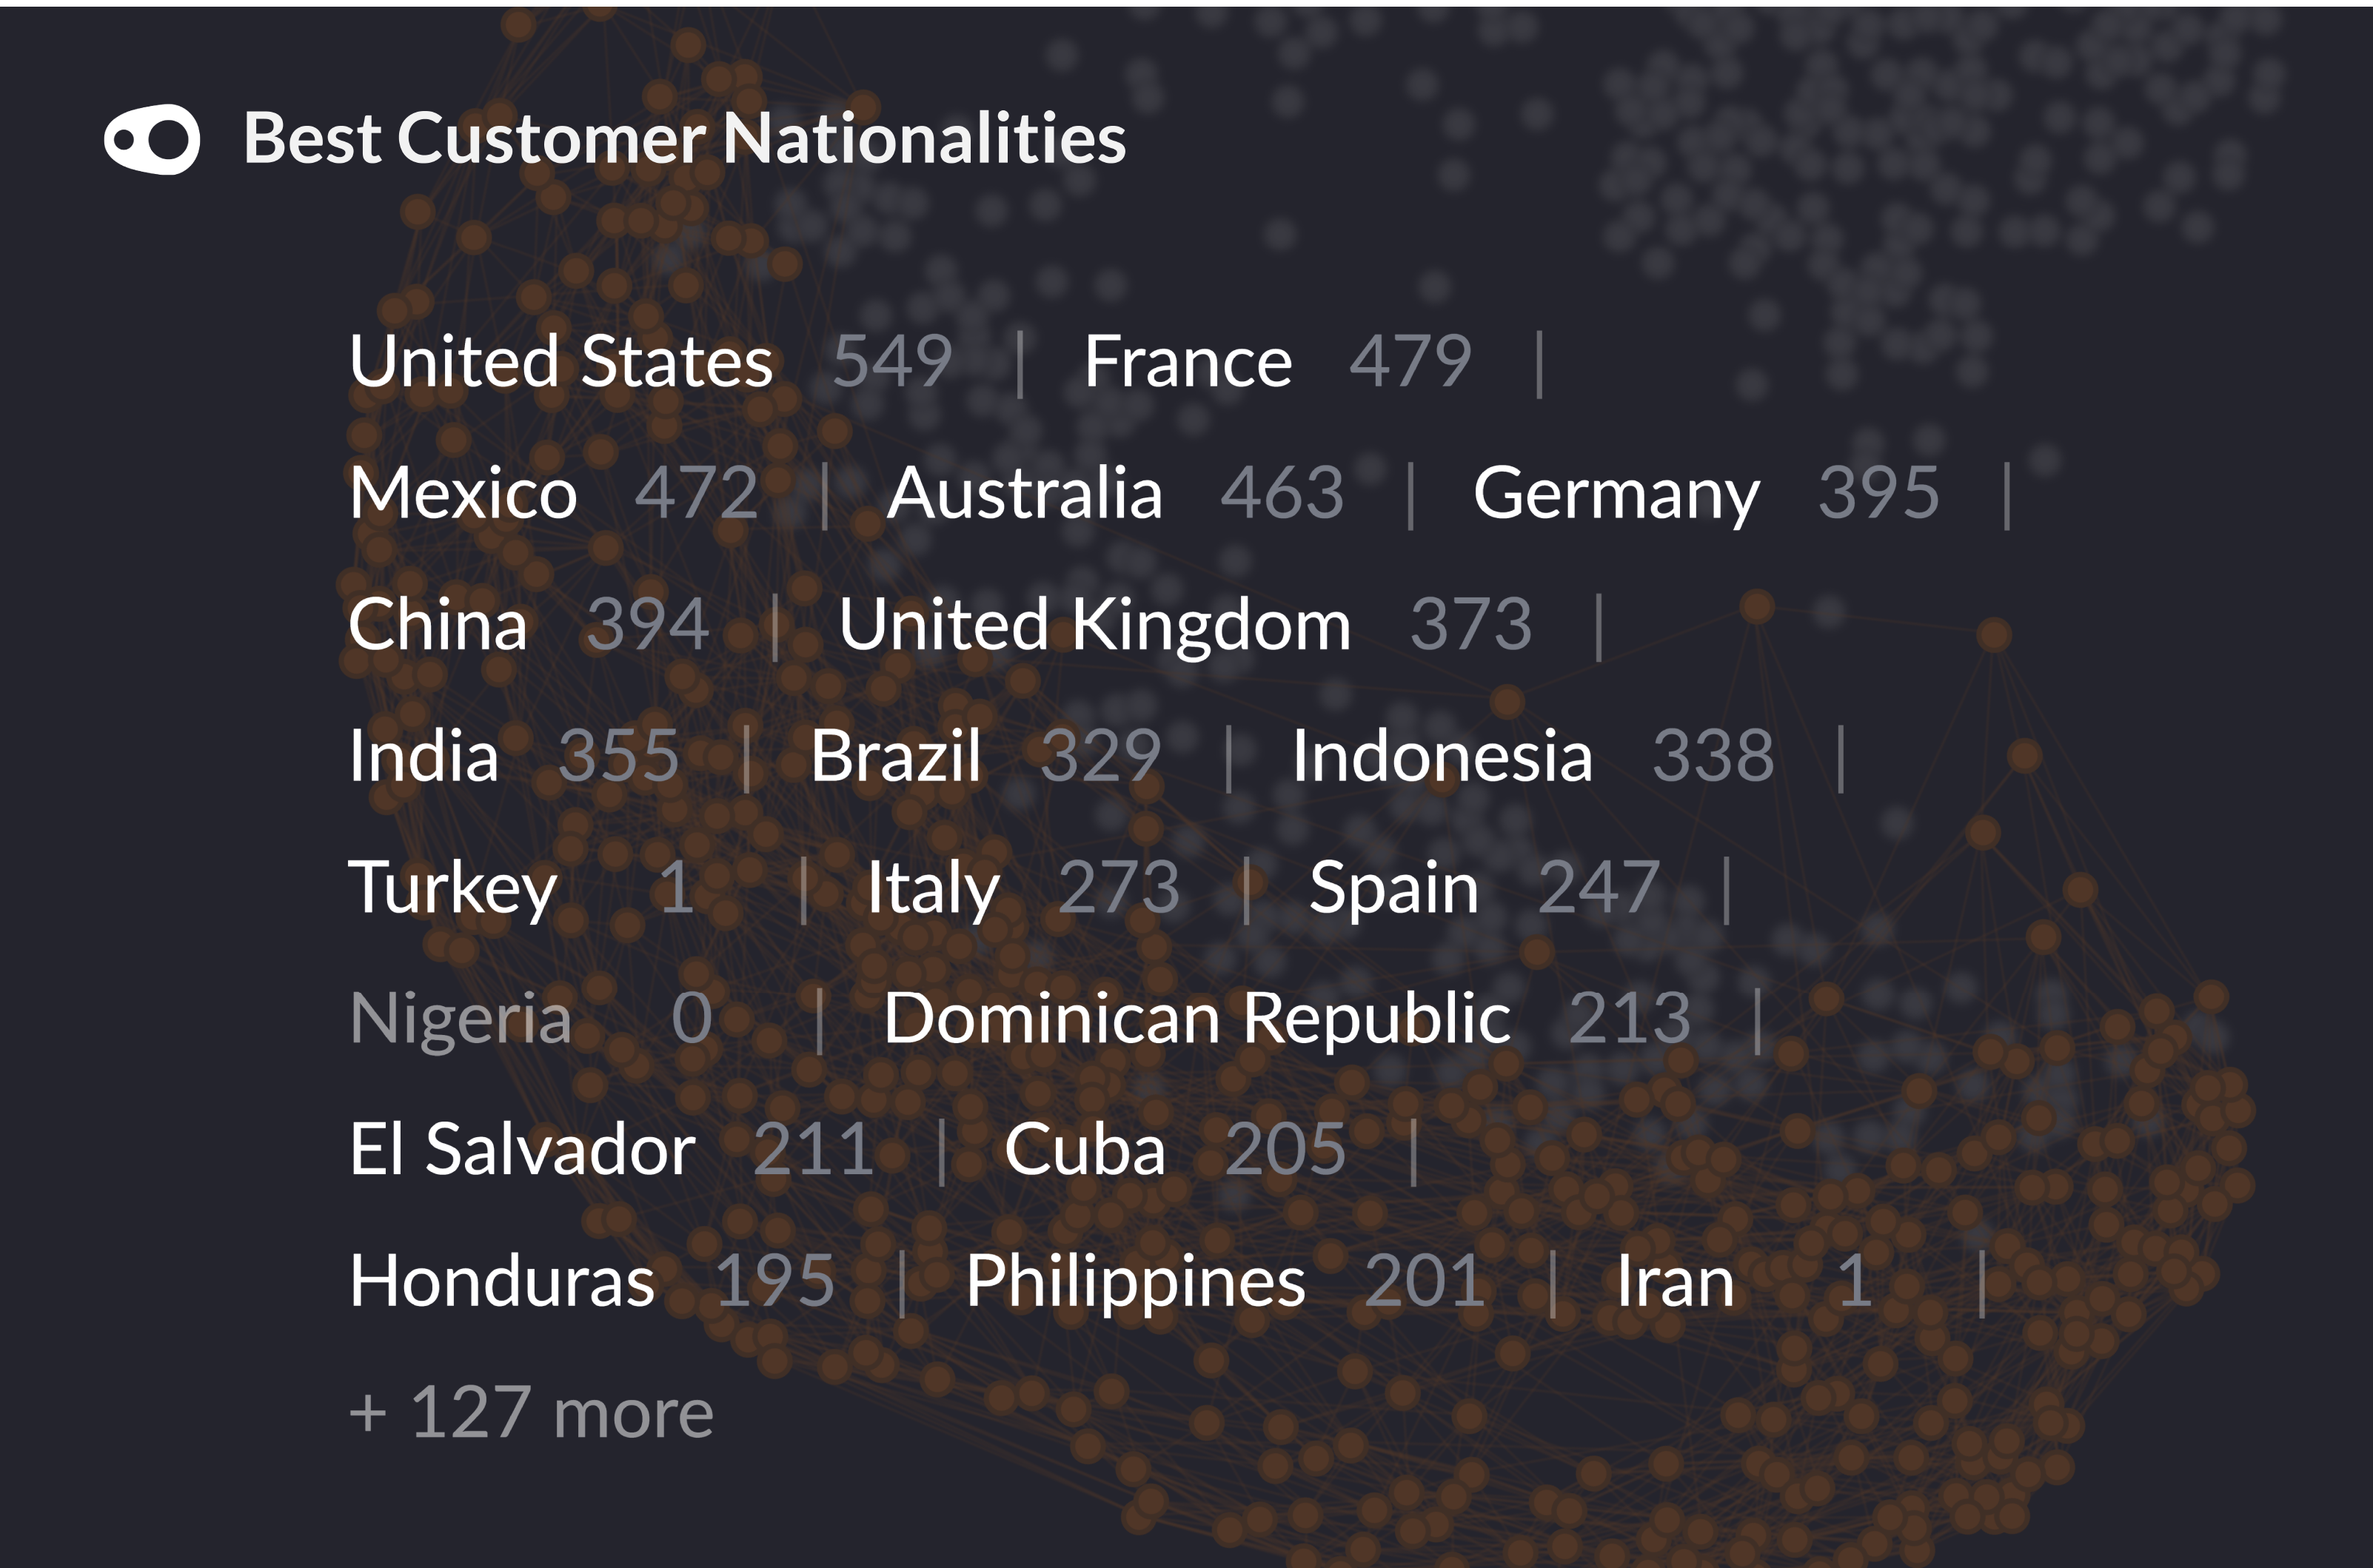 The most common nationalities in our segment of best customers.